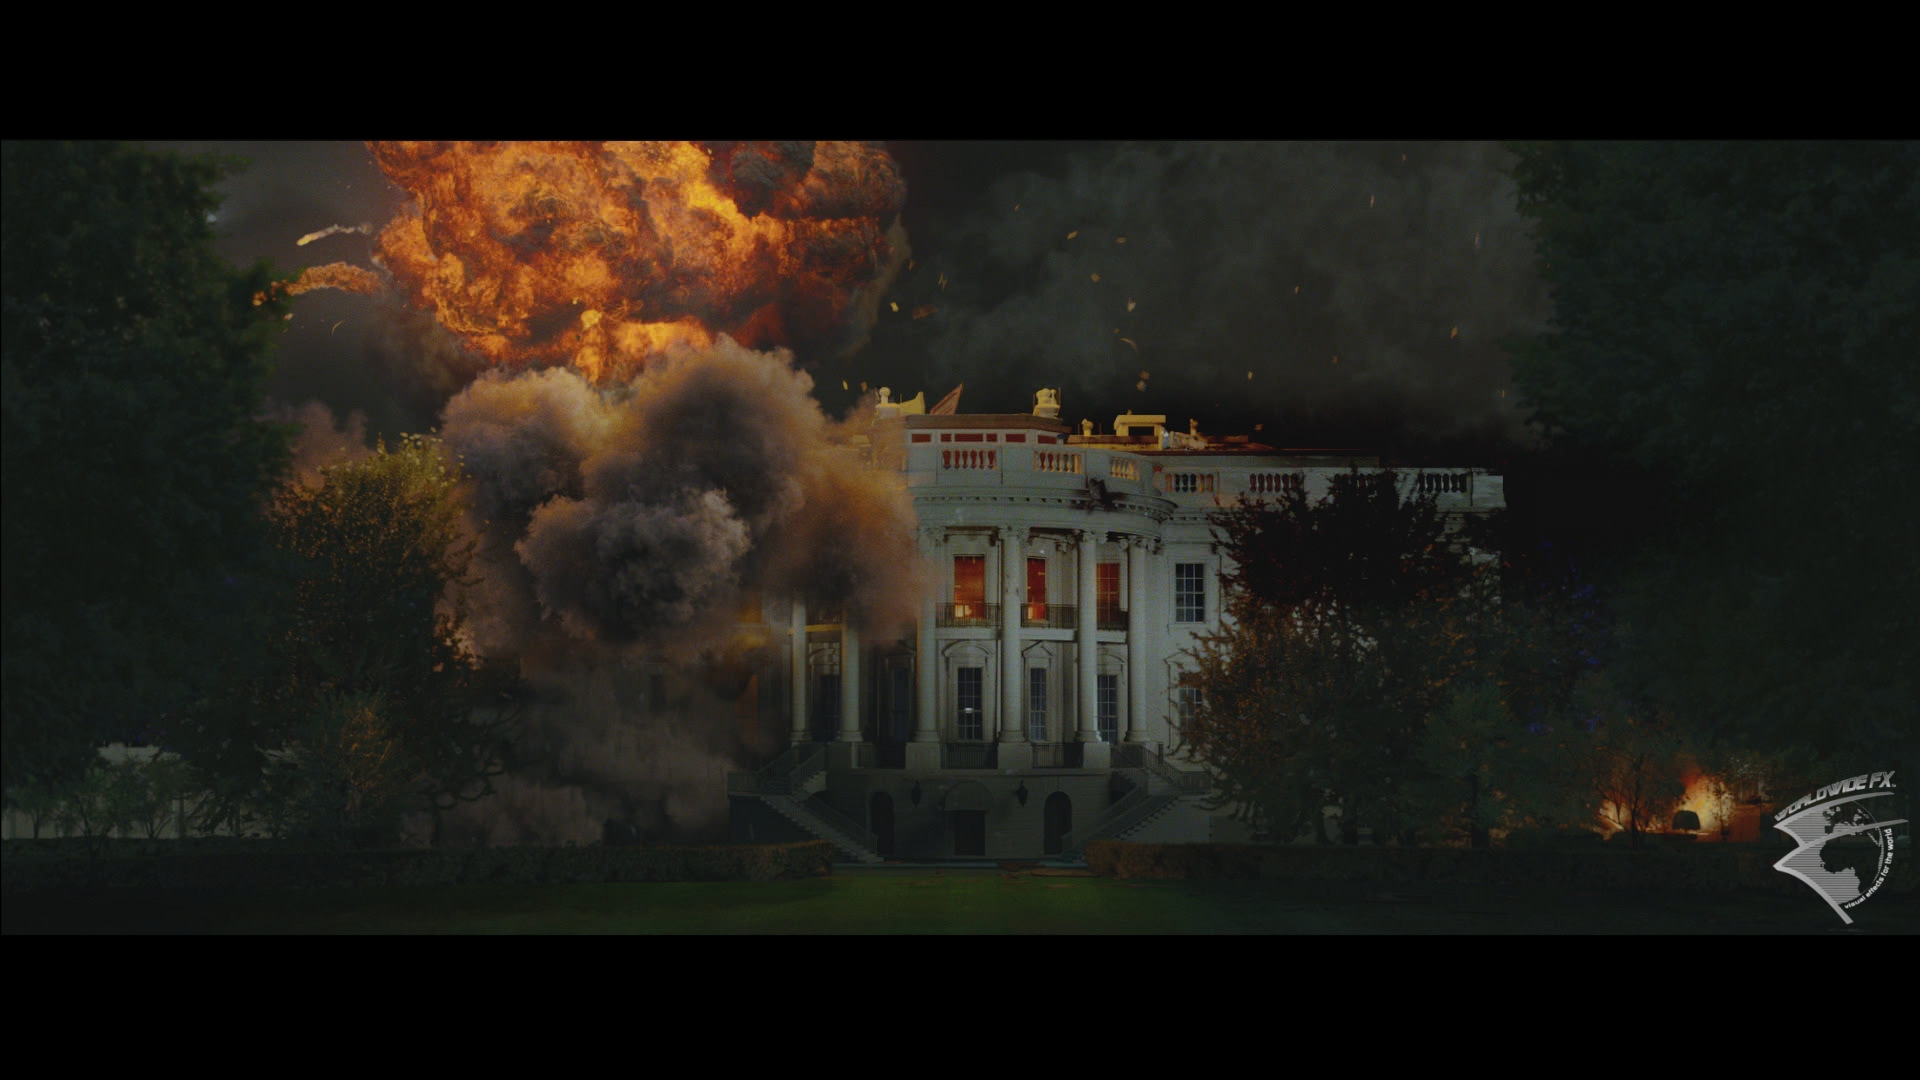 How VFX destroyed and saved Washington? That is how: